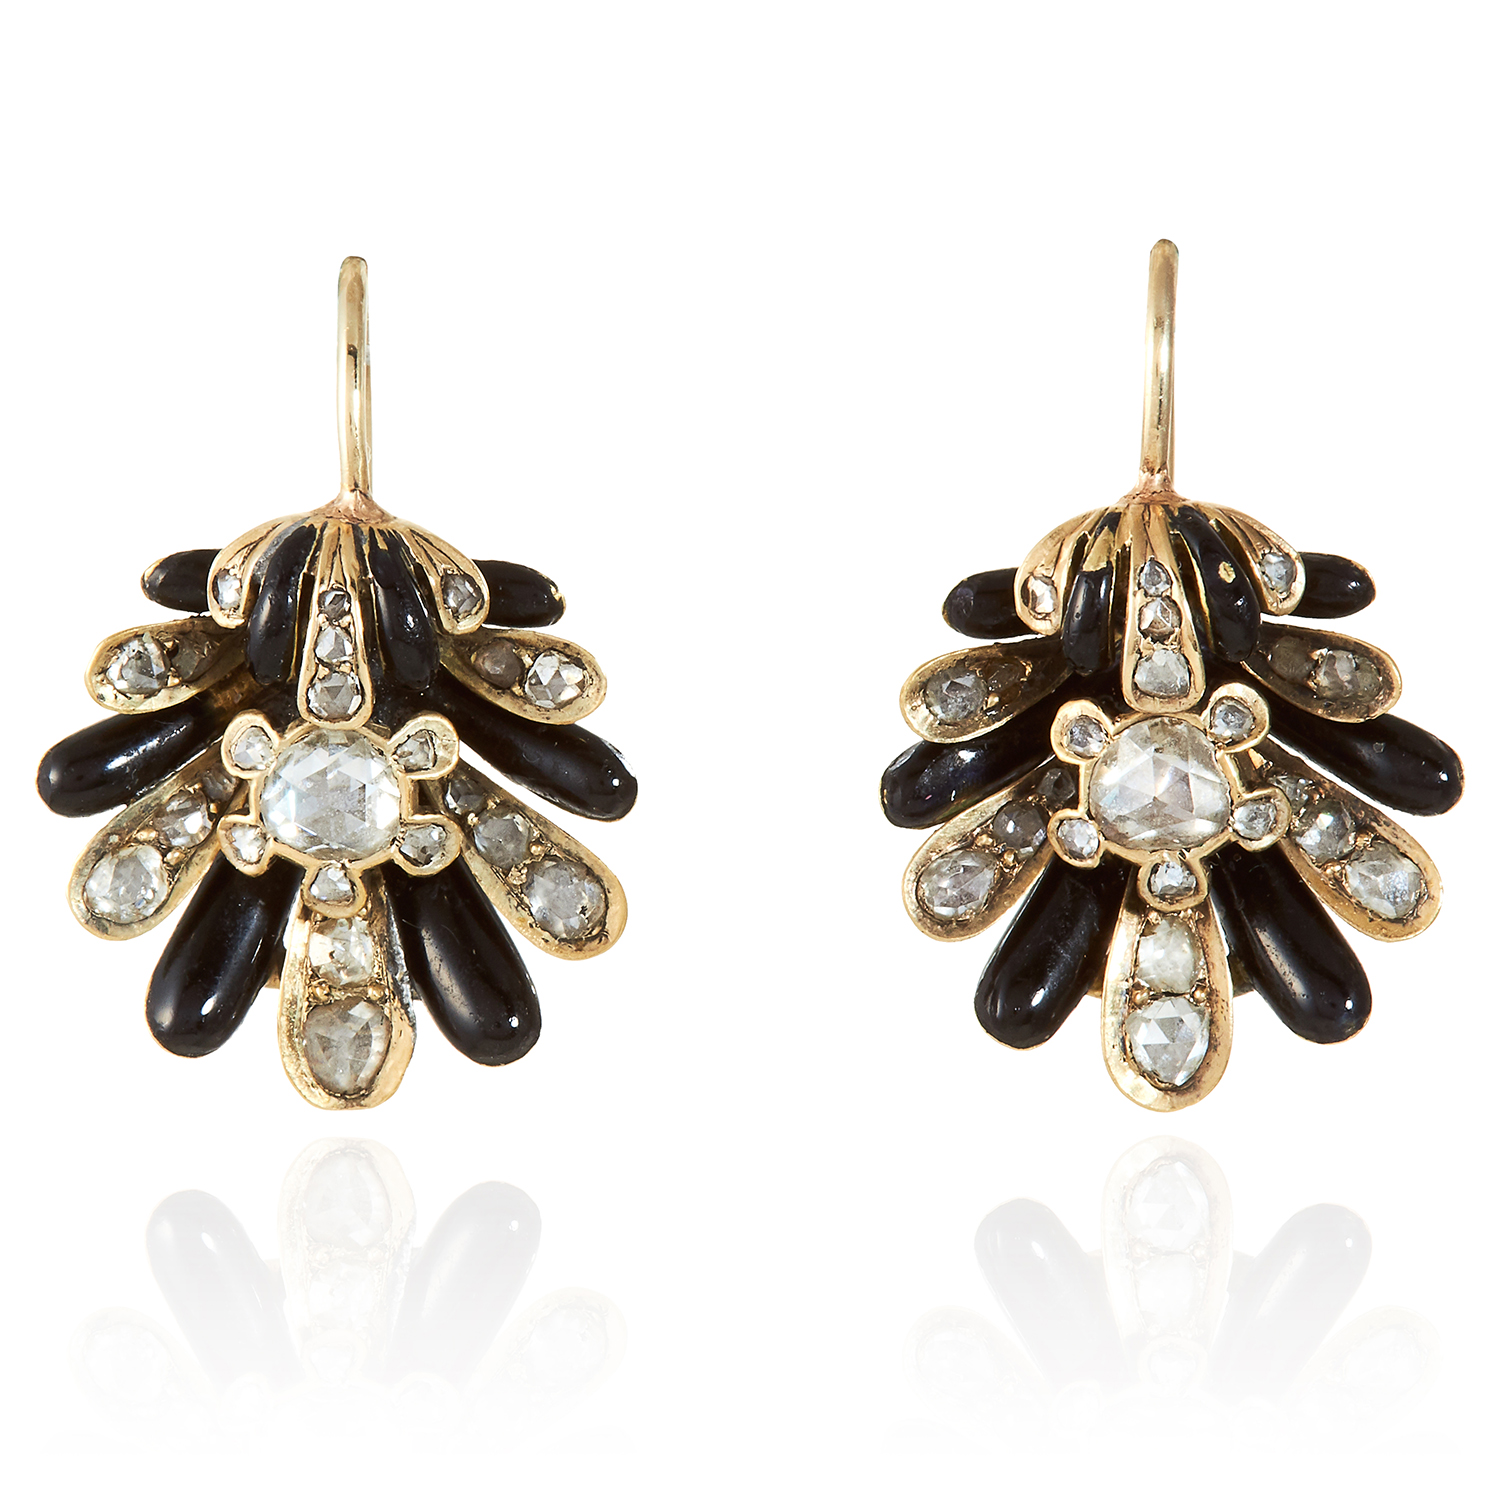 Los 350 - A PAIR OF ANTIQUE DIAMOND AND ENAMEL SCALLOP SHELL EARRINGS in high carat yellow gold, each